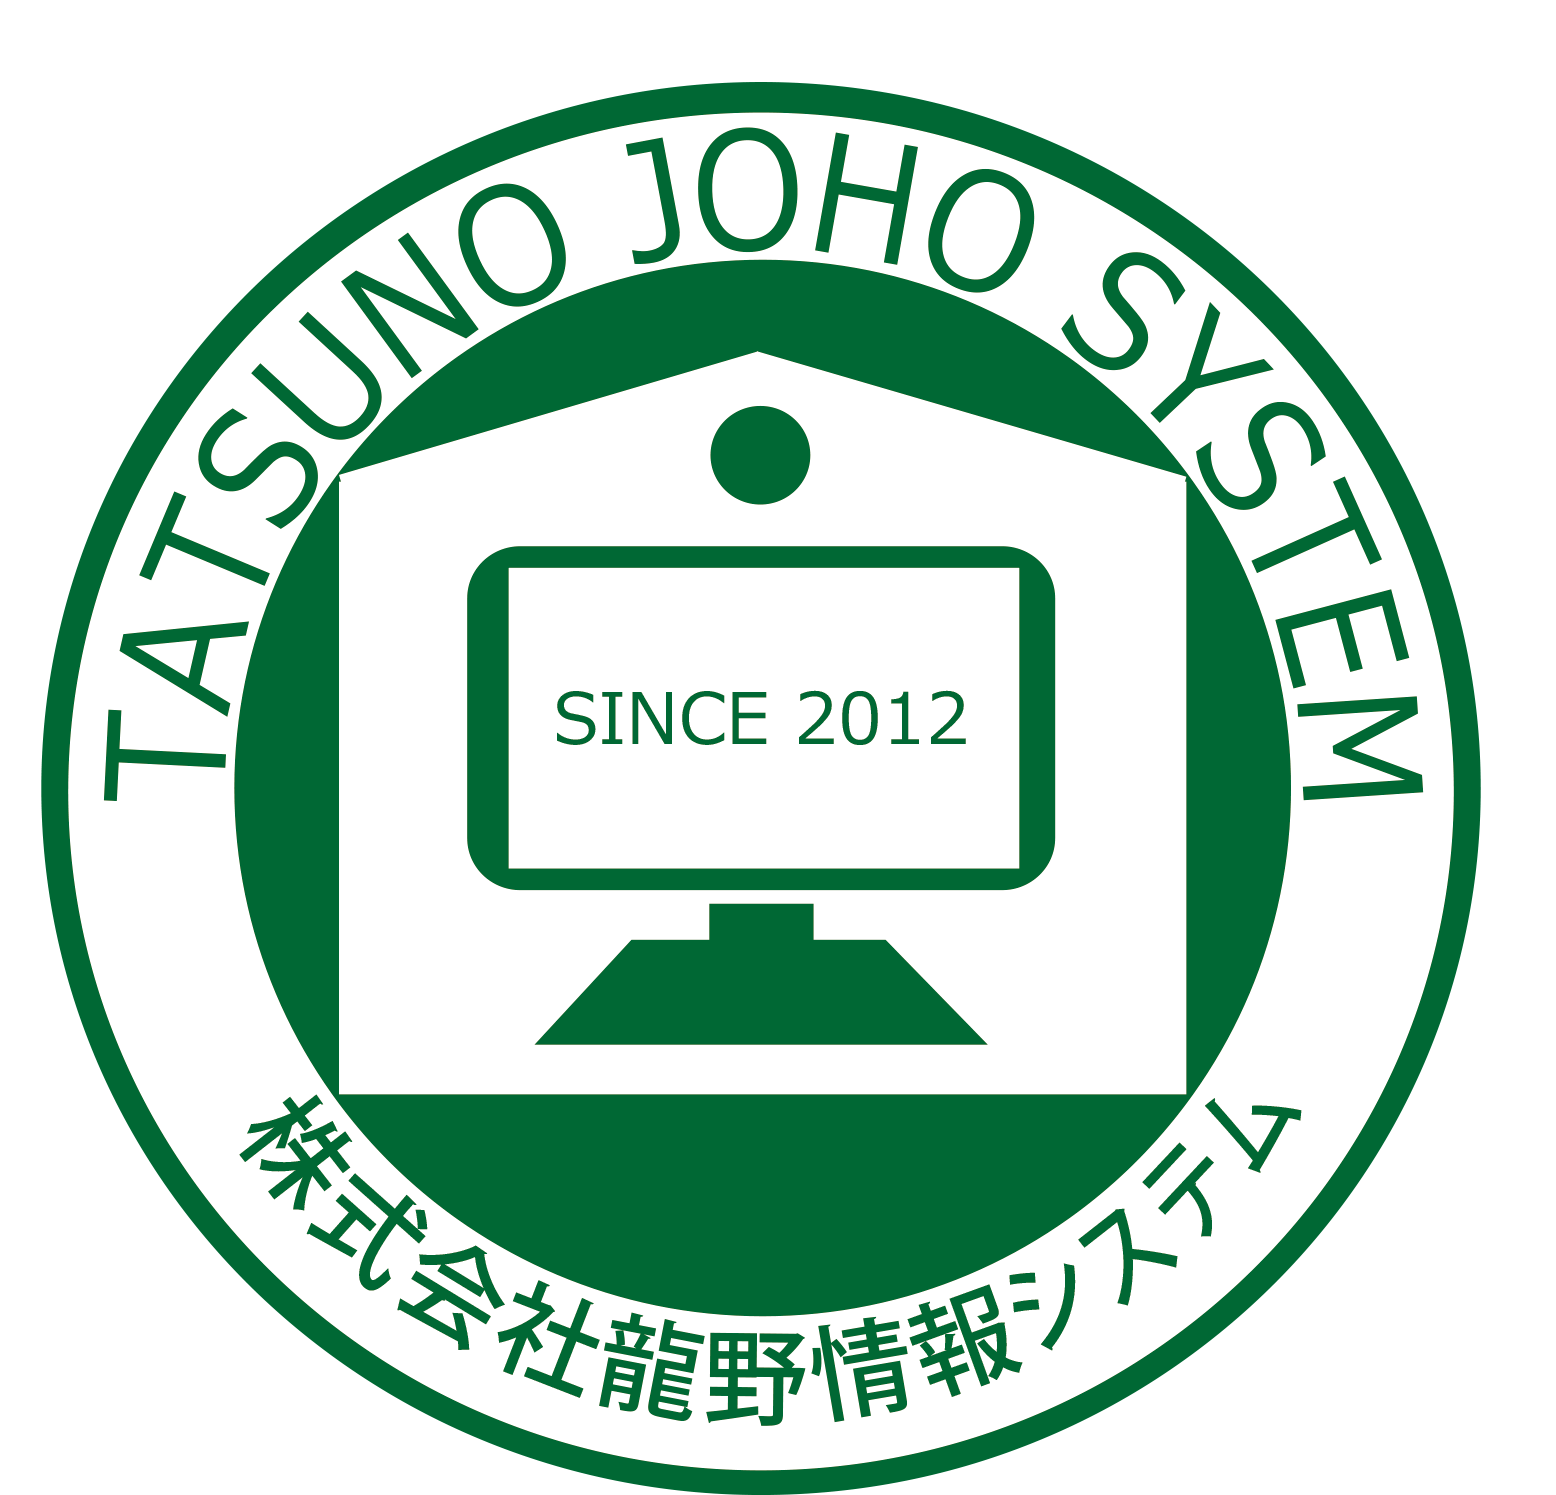 Tatsuno Joho System of App and System Development